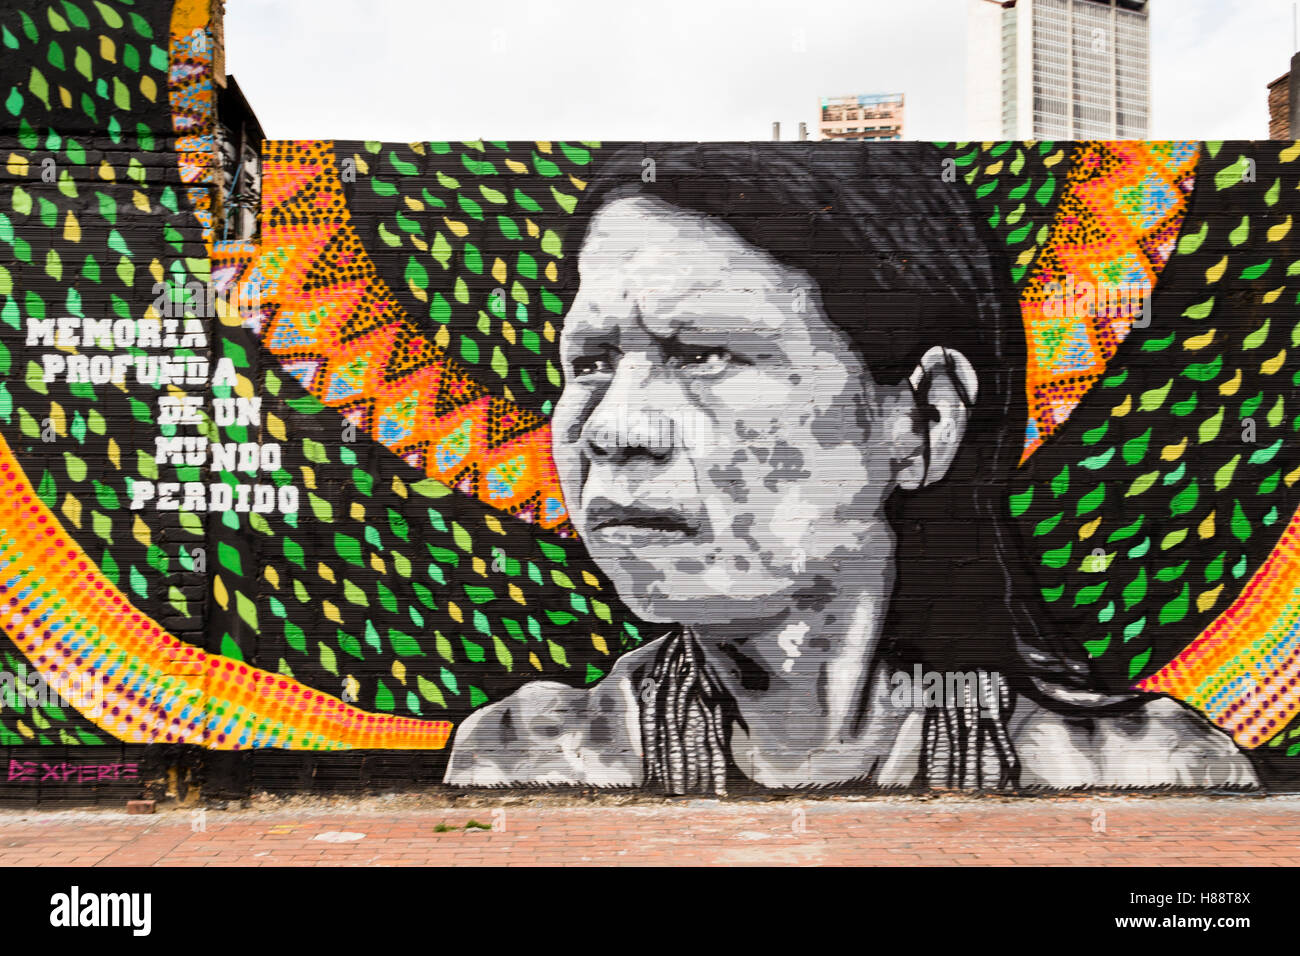 Street art, mural, Bogota, District of Santafe, Colombia - Stock Image